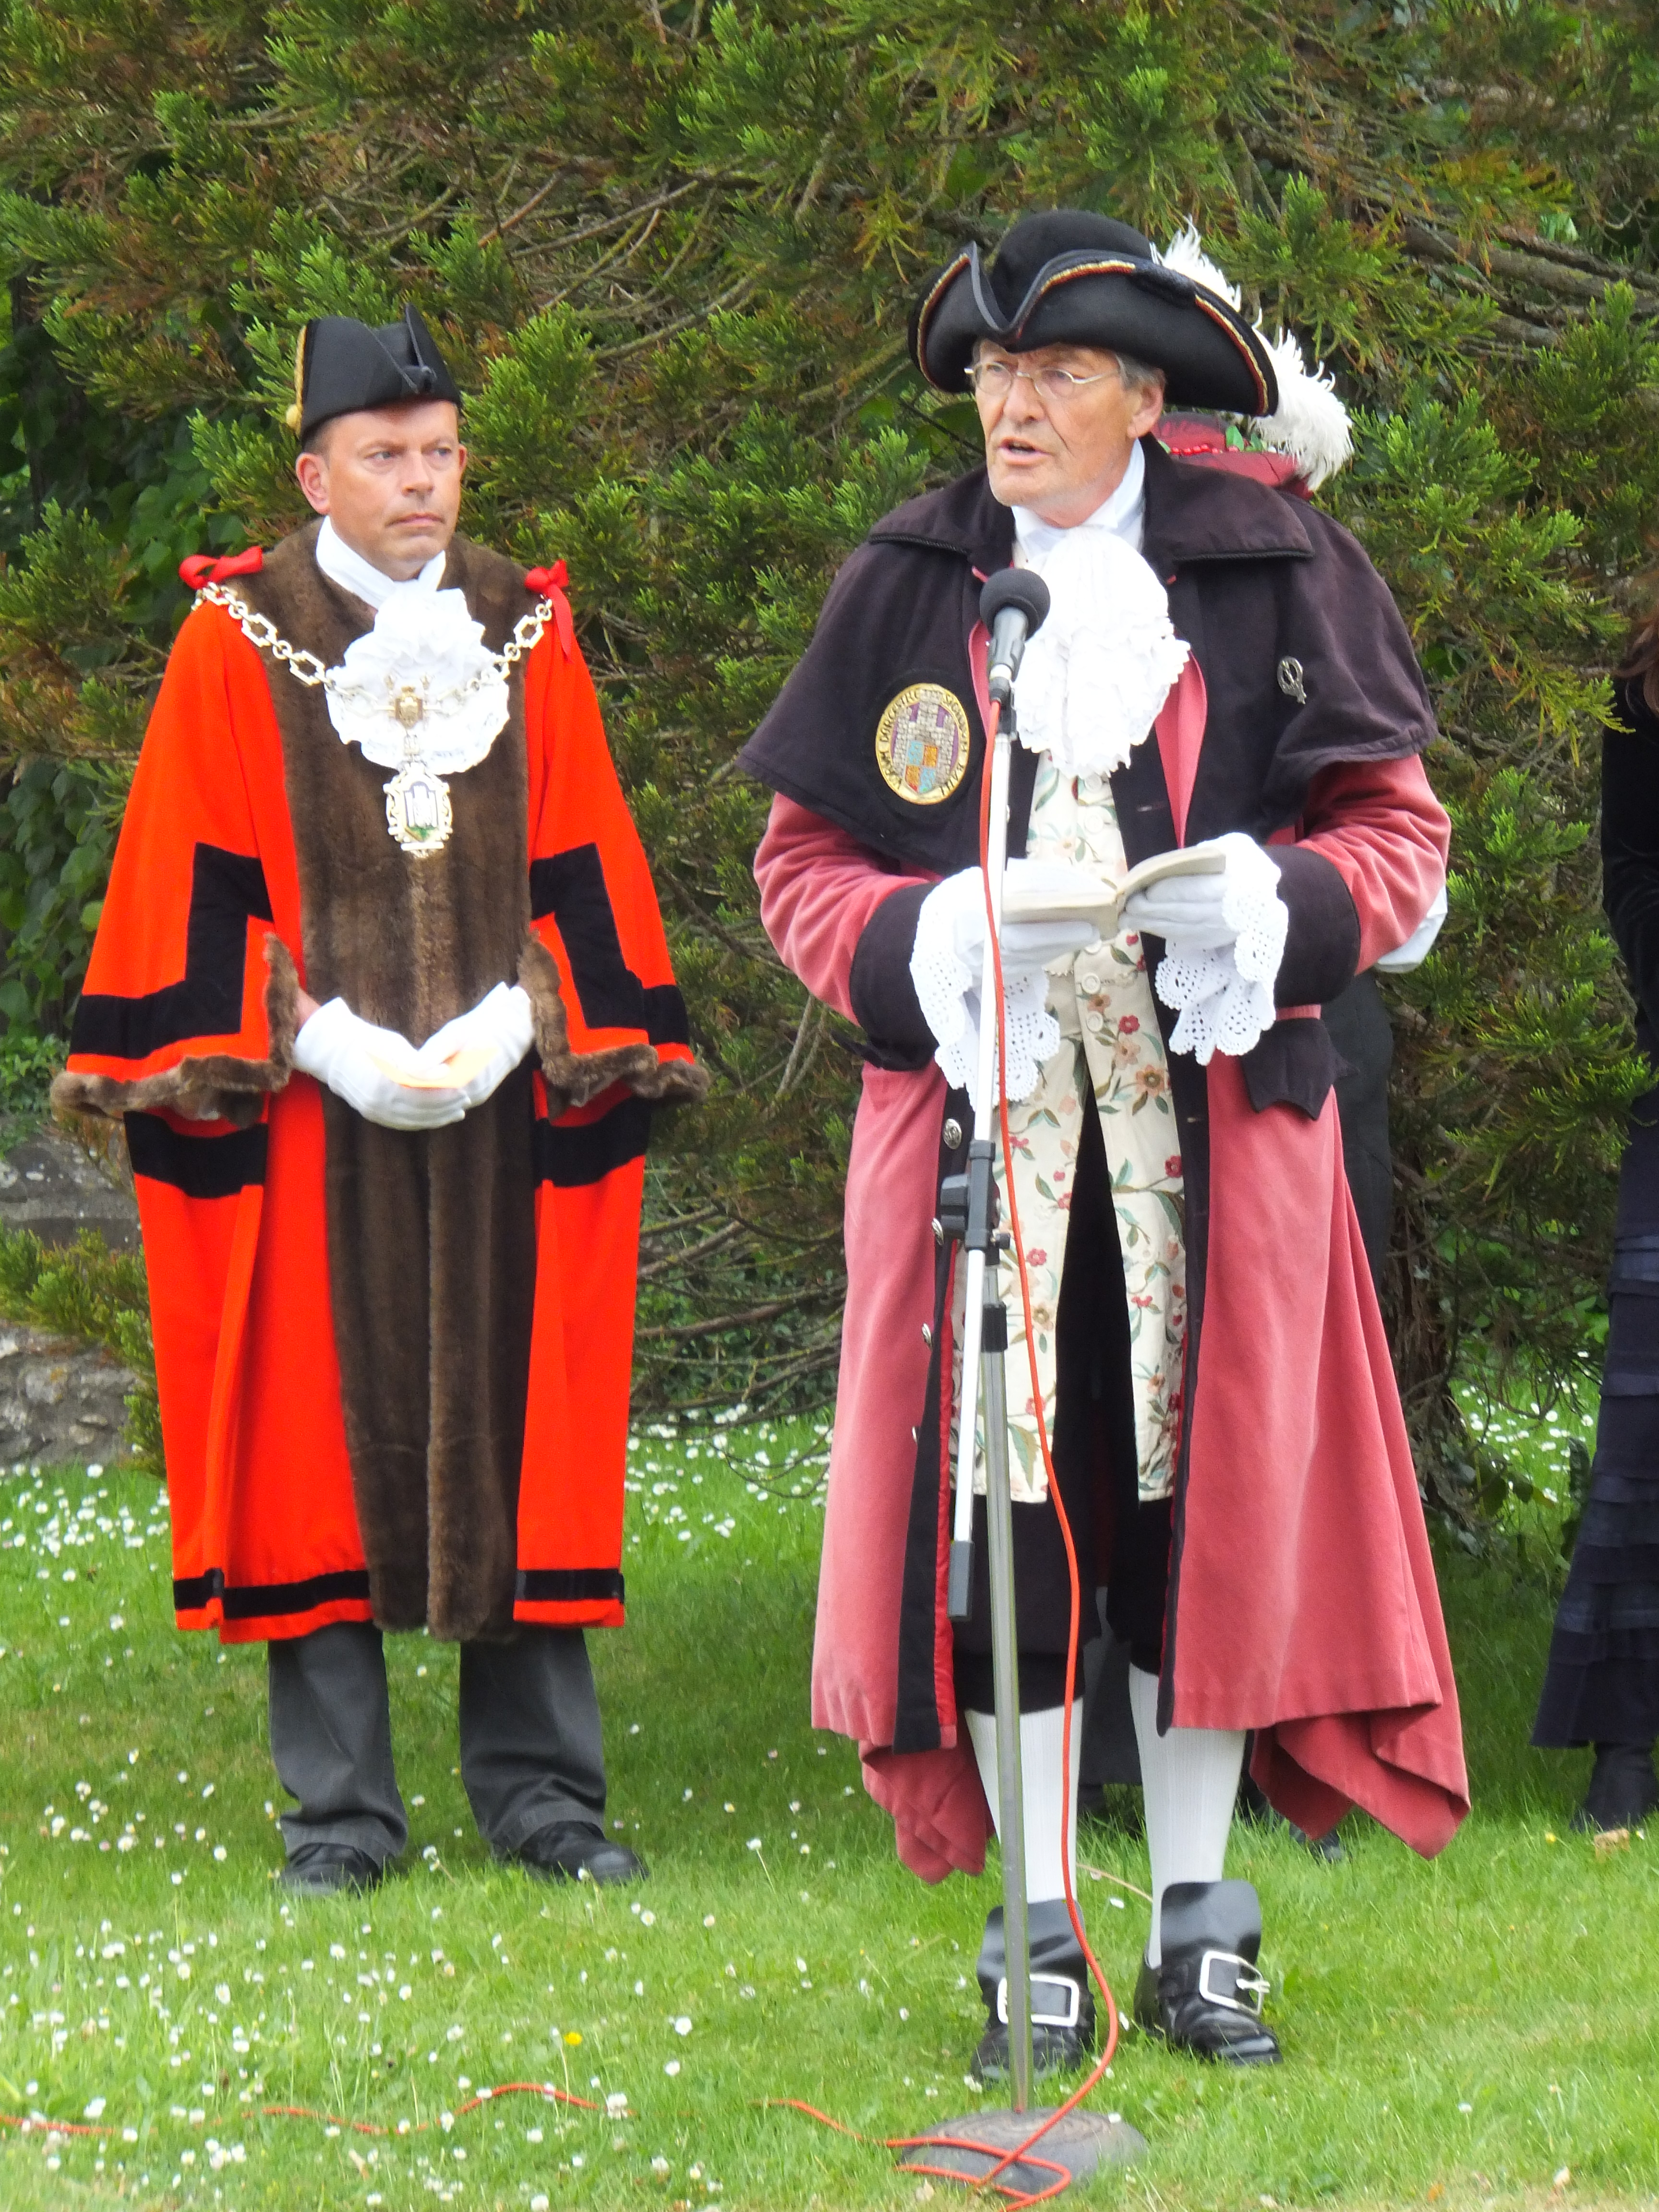 Birthday Celebrations 2012 - Mayor of Dorchester and Town Cryer Alistair Chisholm